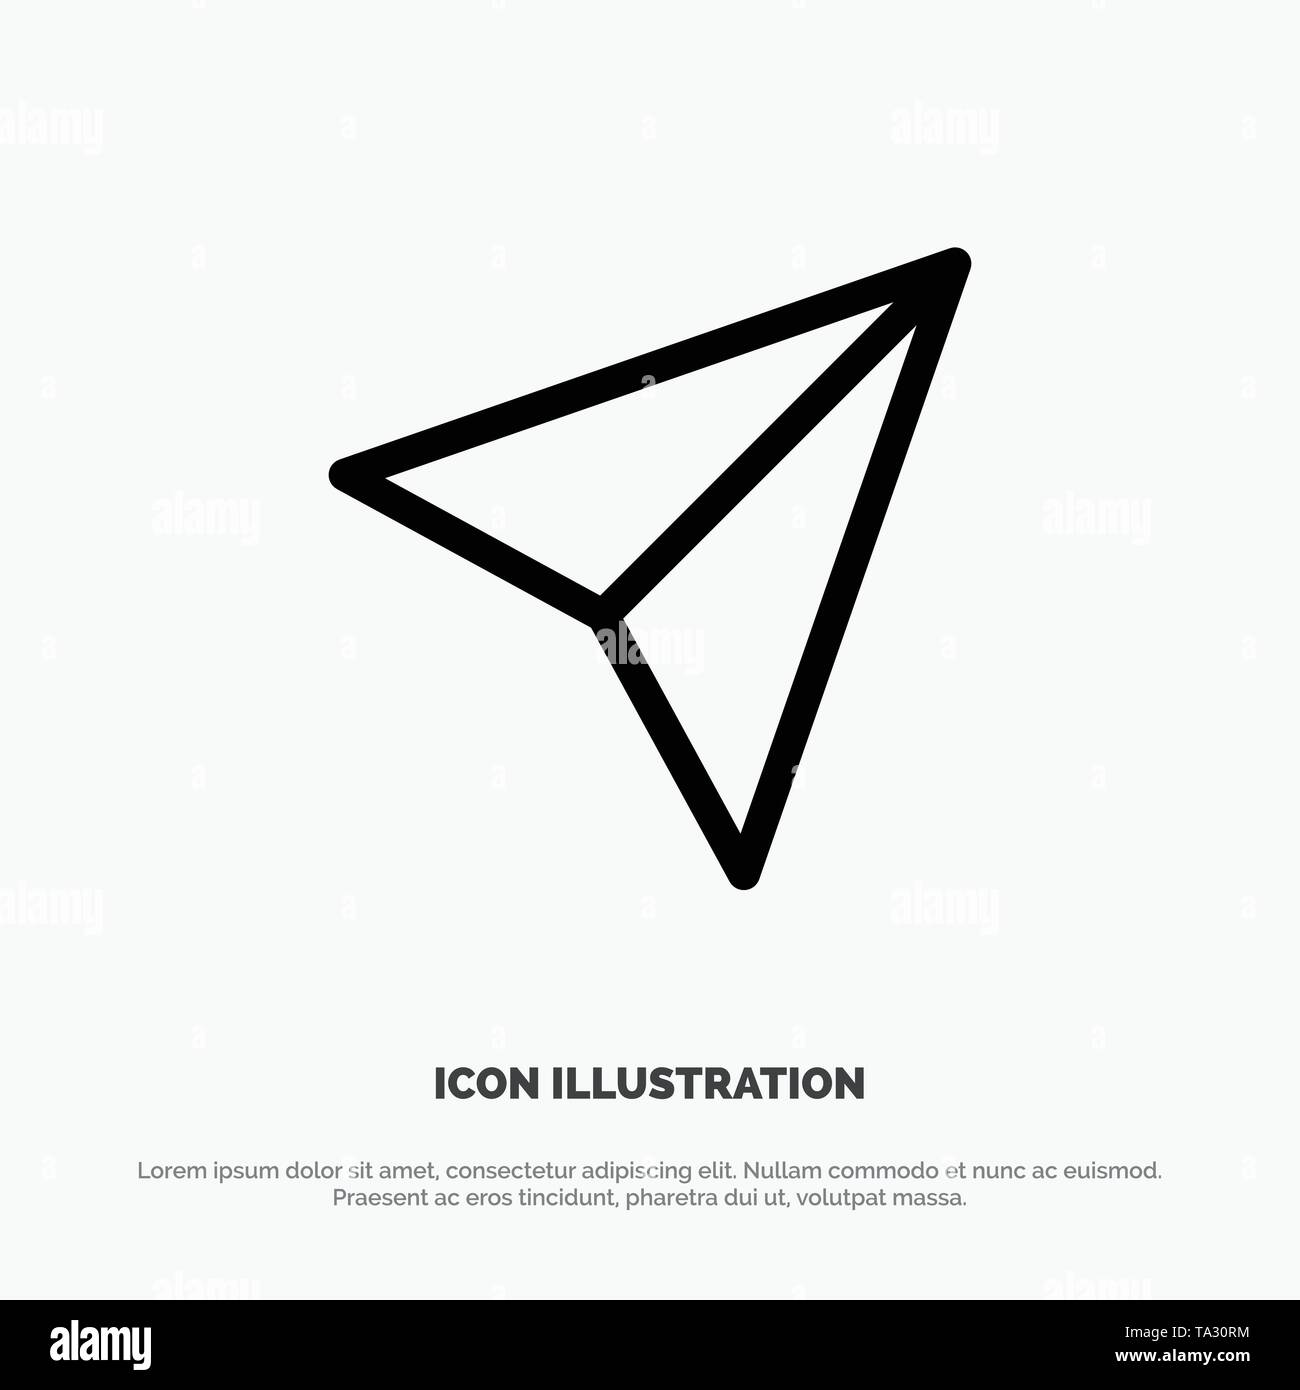 Instagram, Sets, Share Line Icon Vector - Stock Image